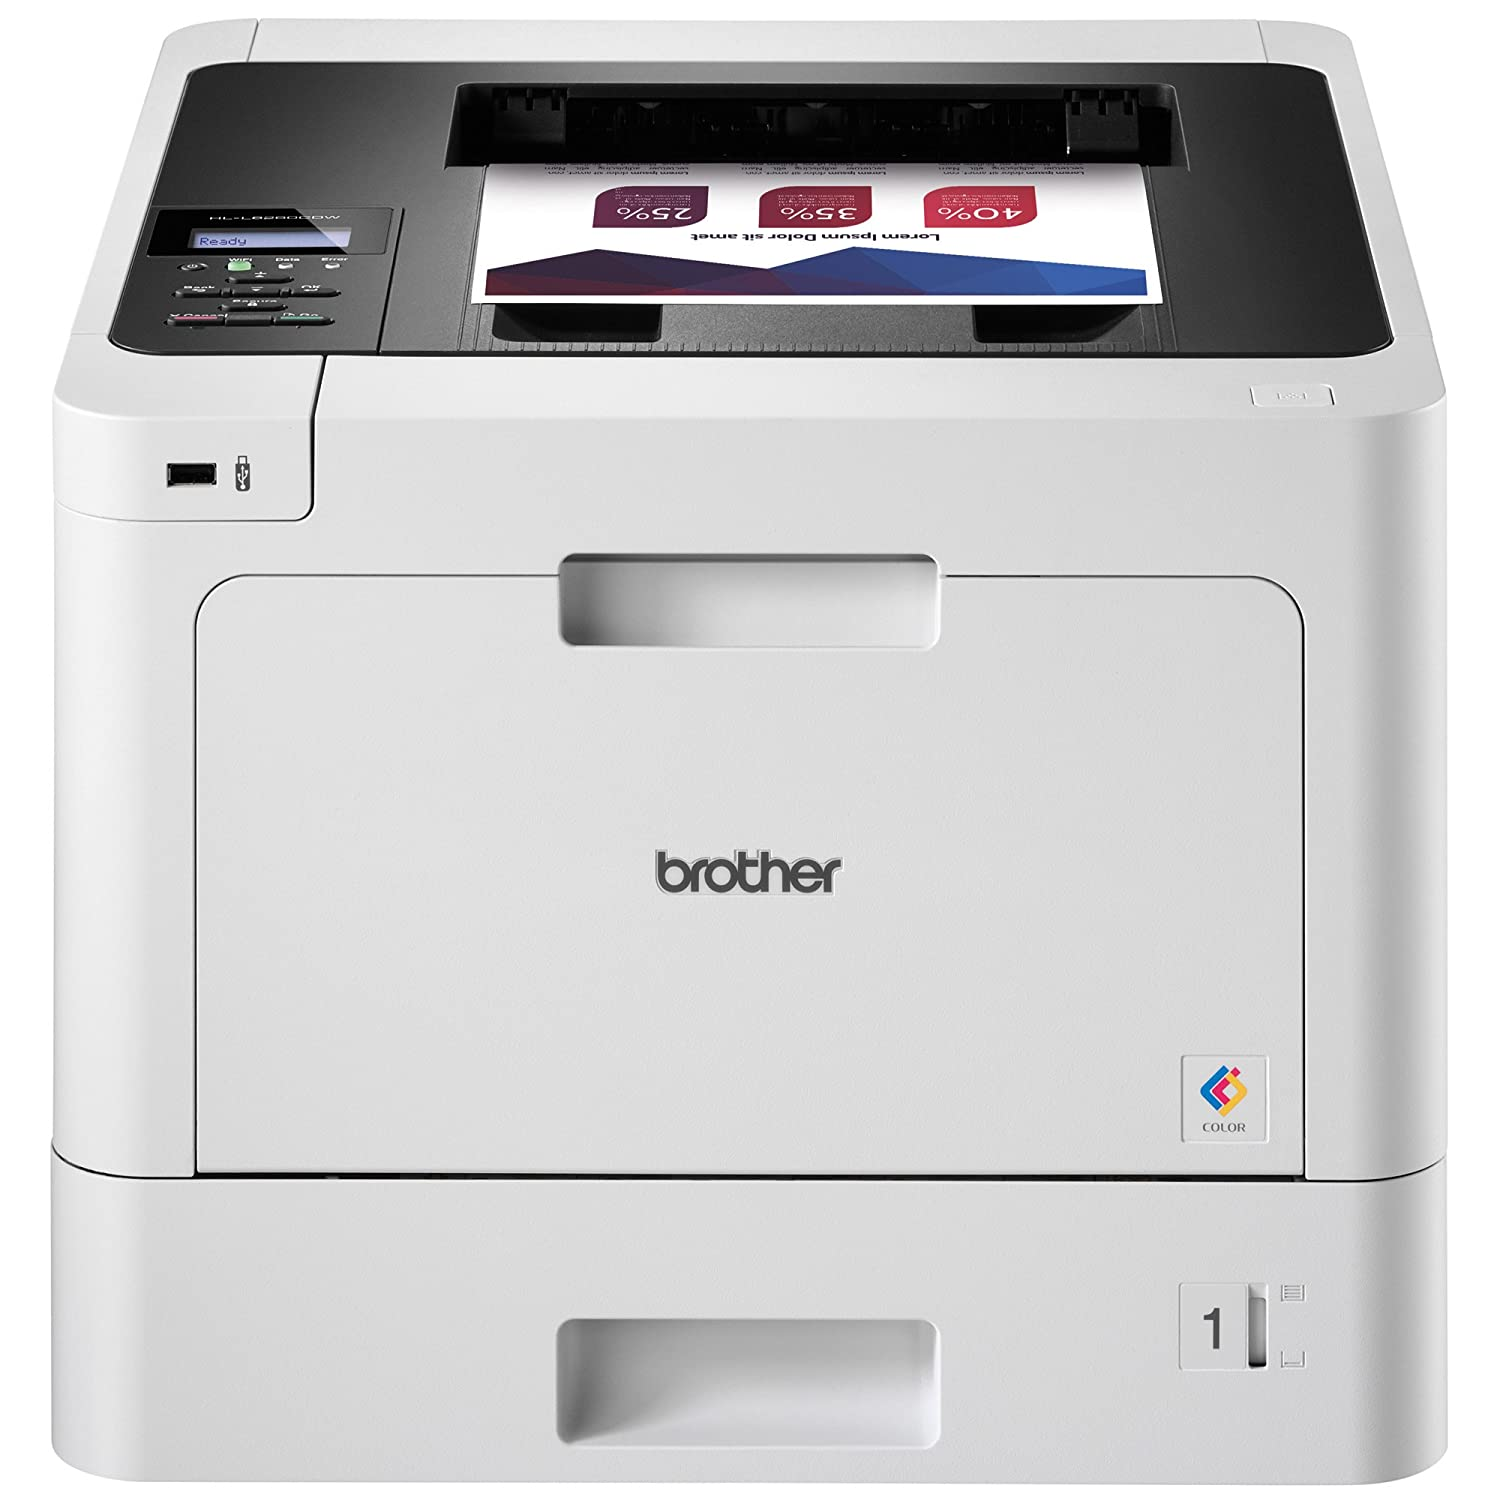 Laser computer printers amazon office electronics printers brother hl l8260cdw business color laser printer duplex printing flexible wireless networking reheart Gallery